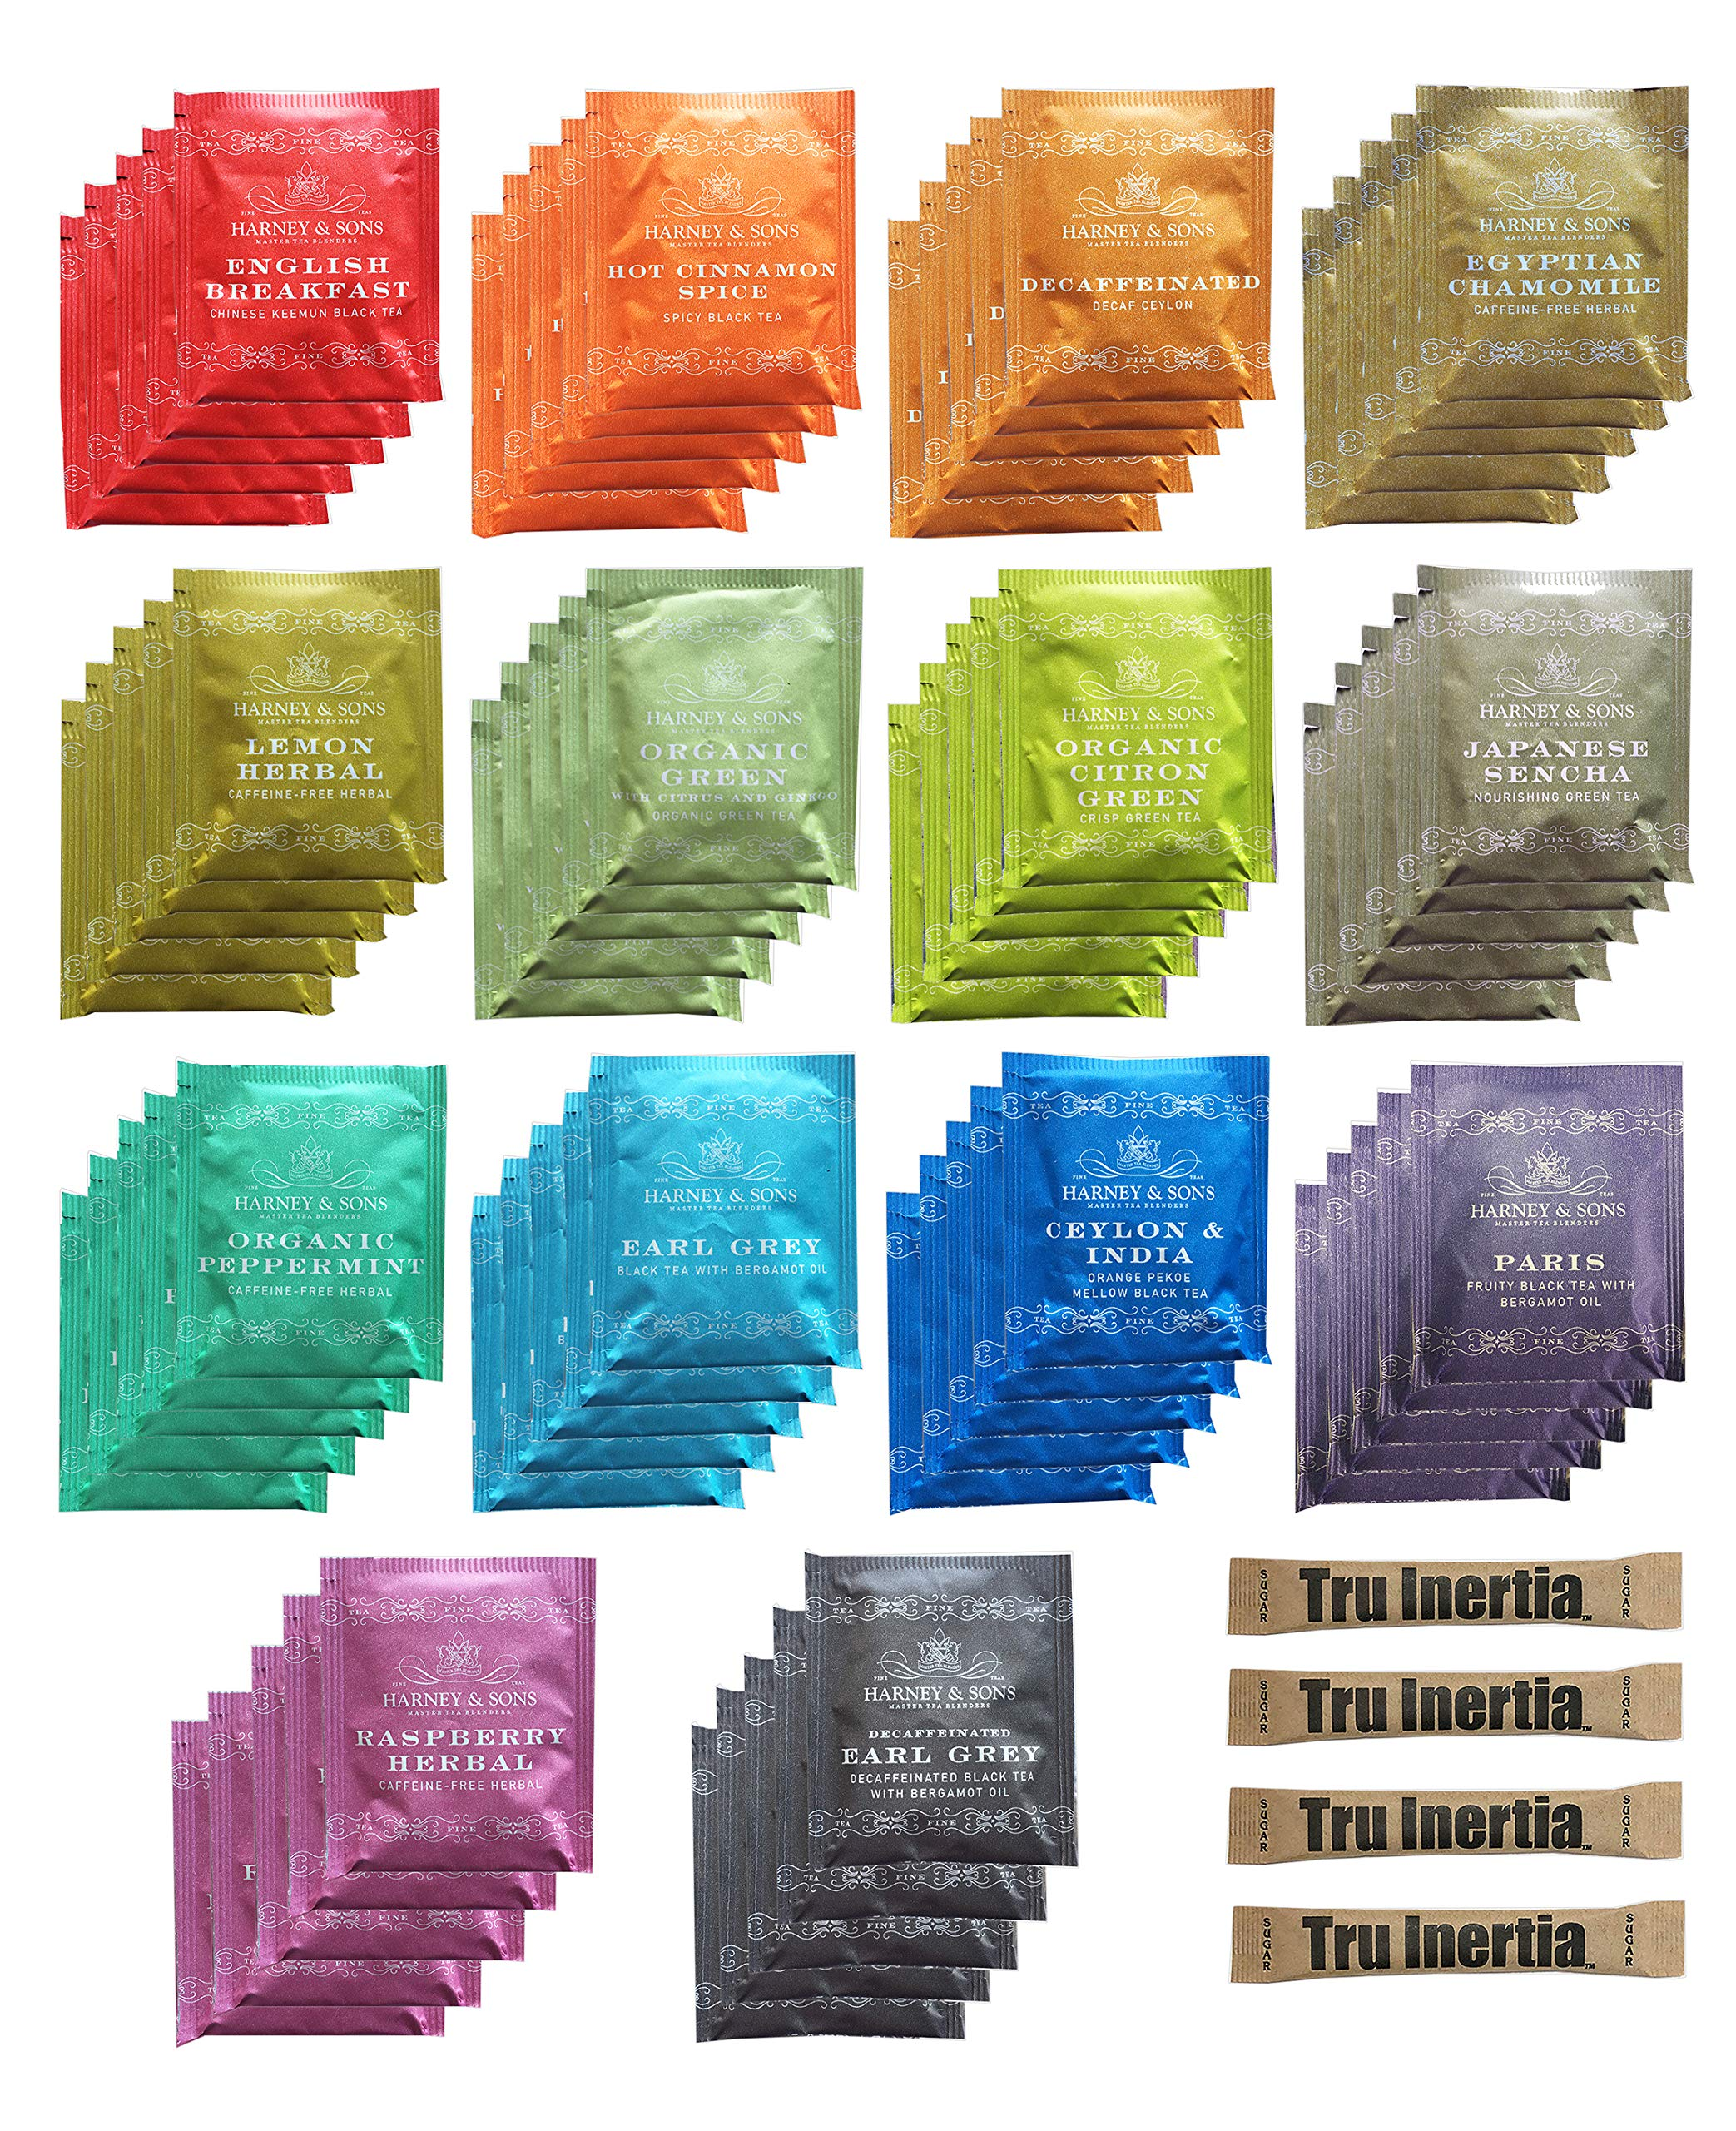 Harney & Sons Assorted Tea Bag Sampler 70 Count With Tru Inertia Sugar Packets Great for Birthday, Hostess and Co-worker Gifts by Tru Inertia